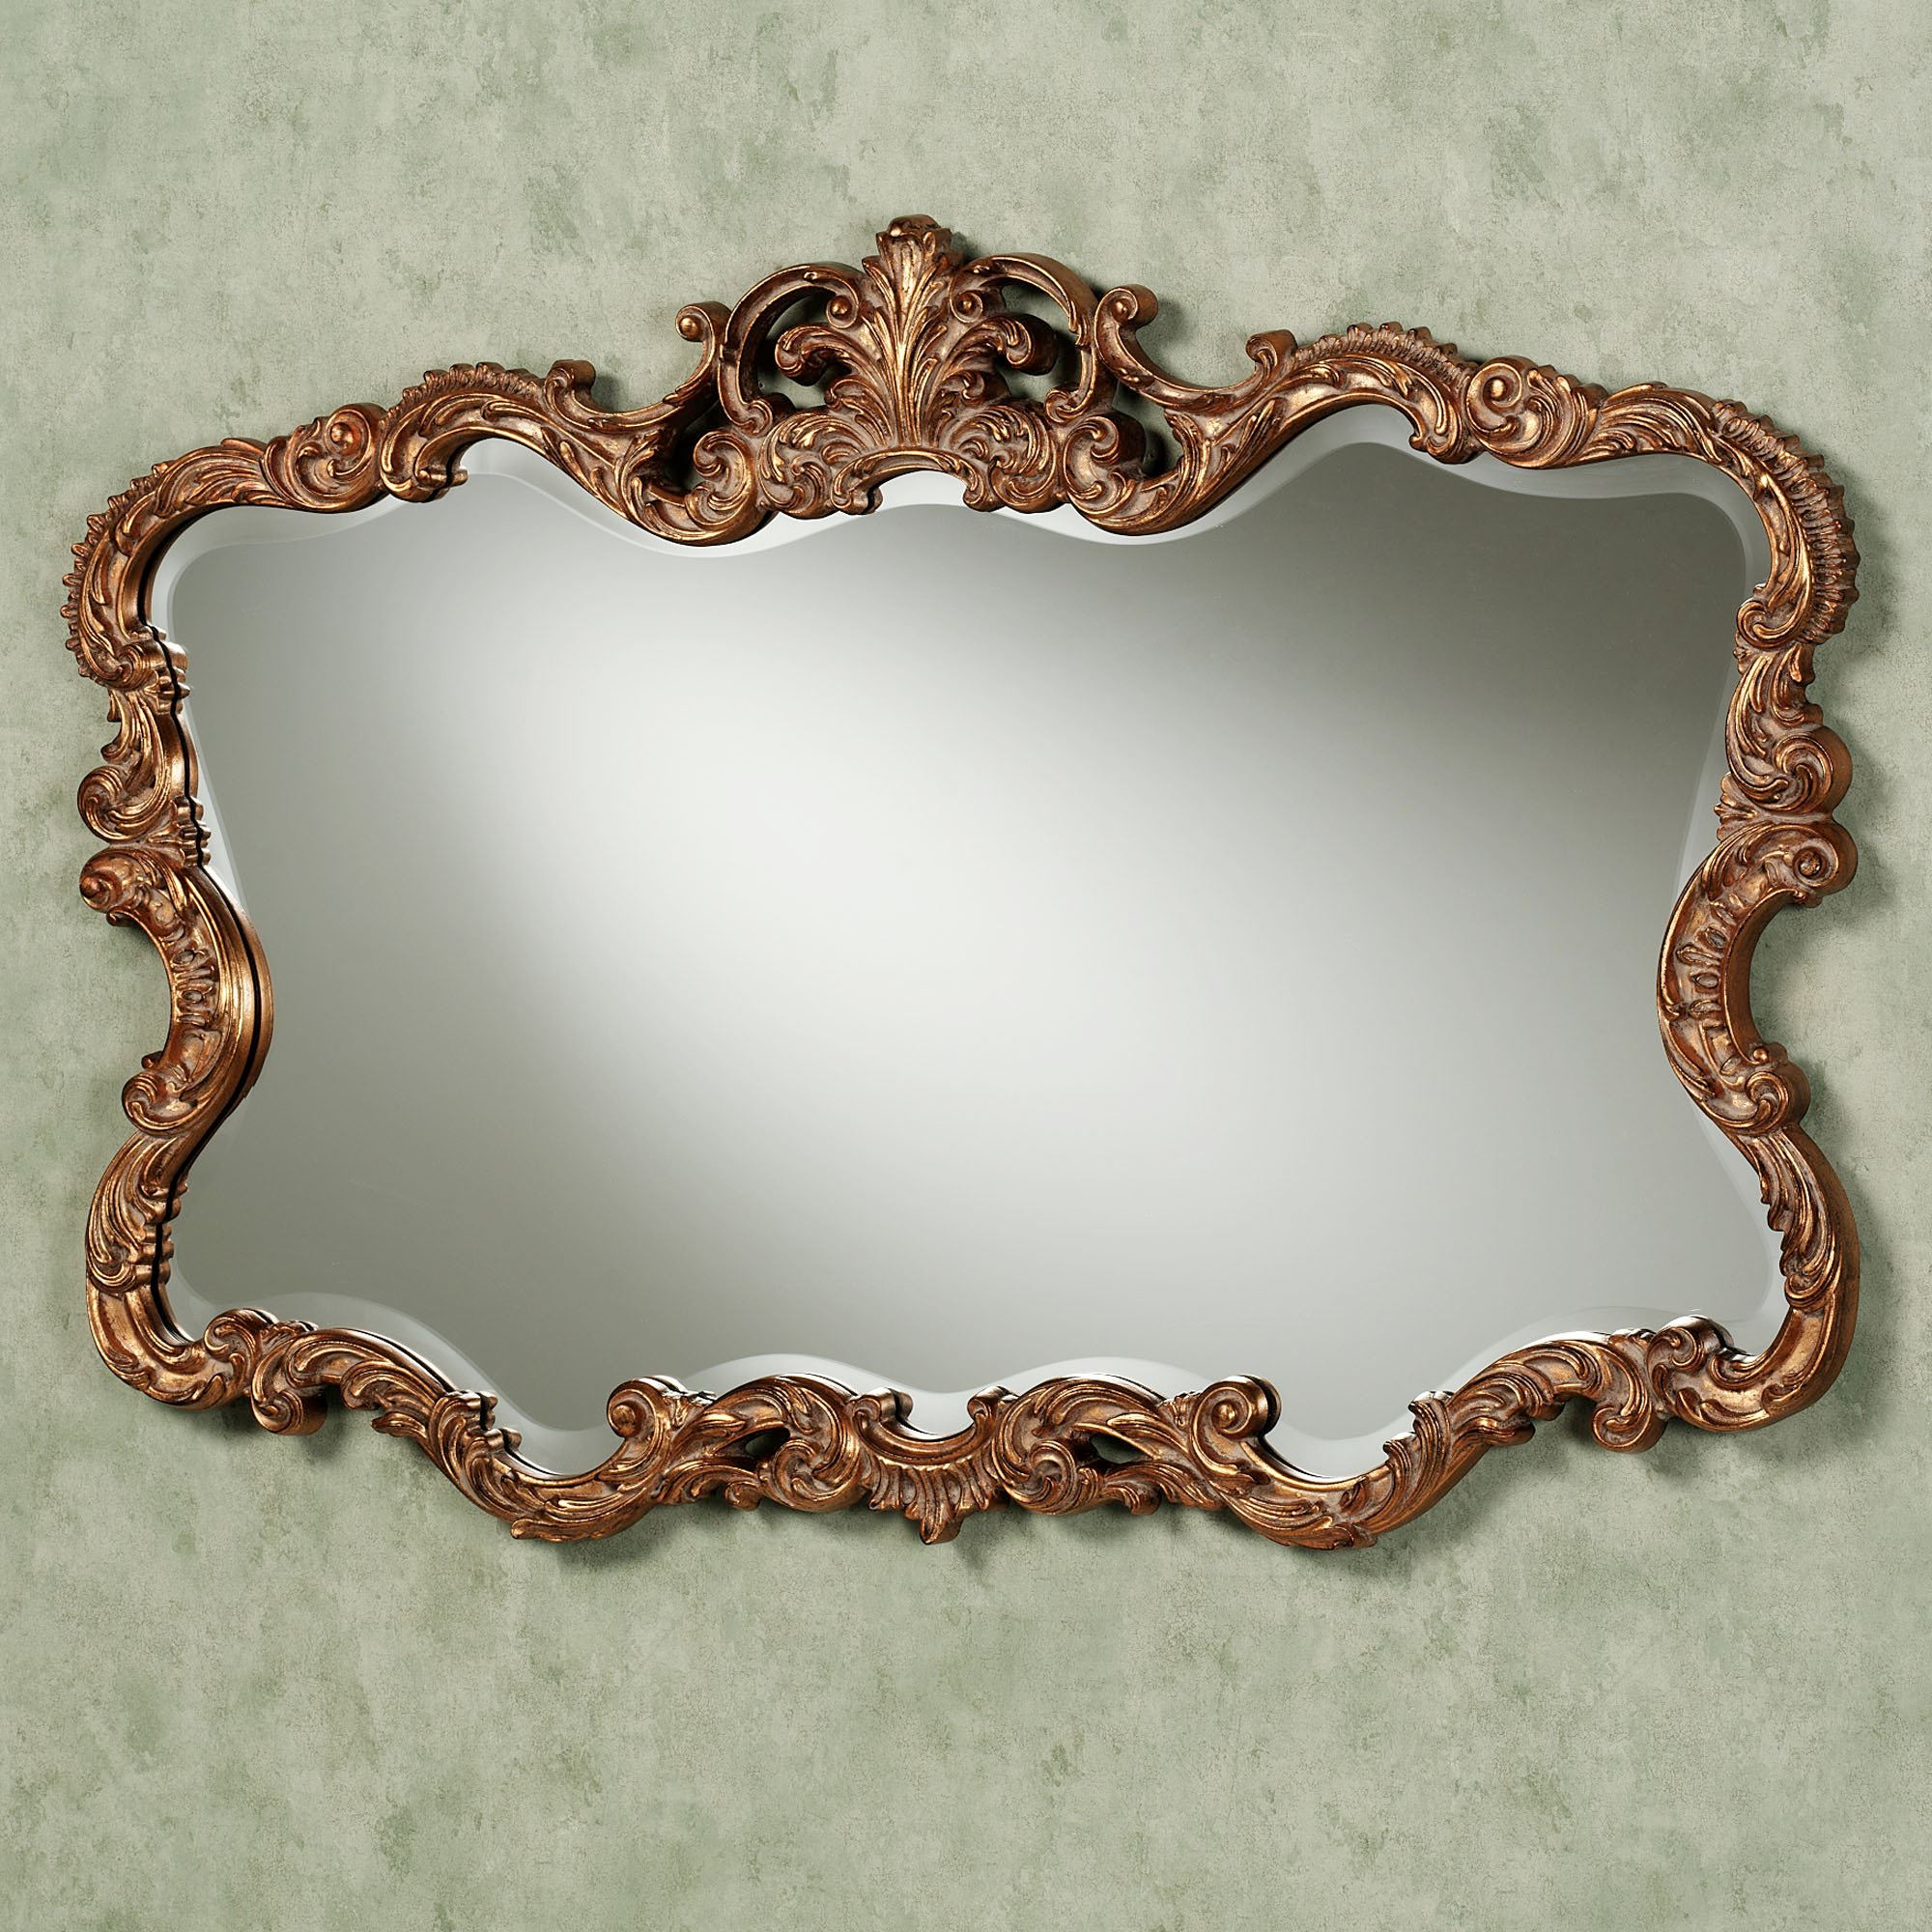 Tamsyn Wall Mirror Intended For Widely Used Antique Gold Wall Mirrors (View 13 of 20)